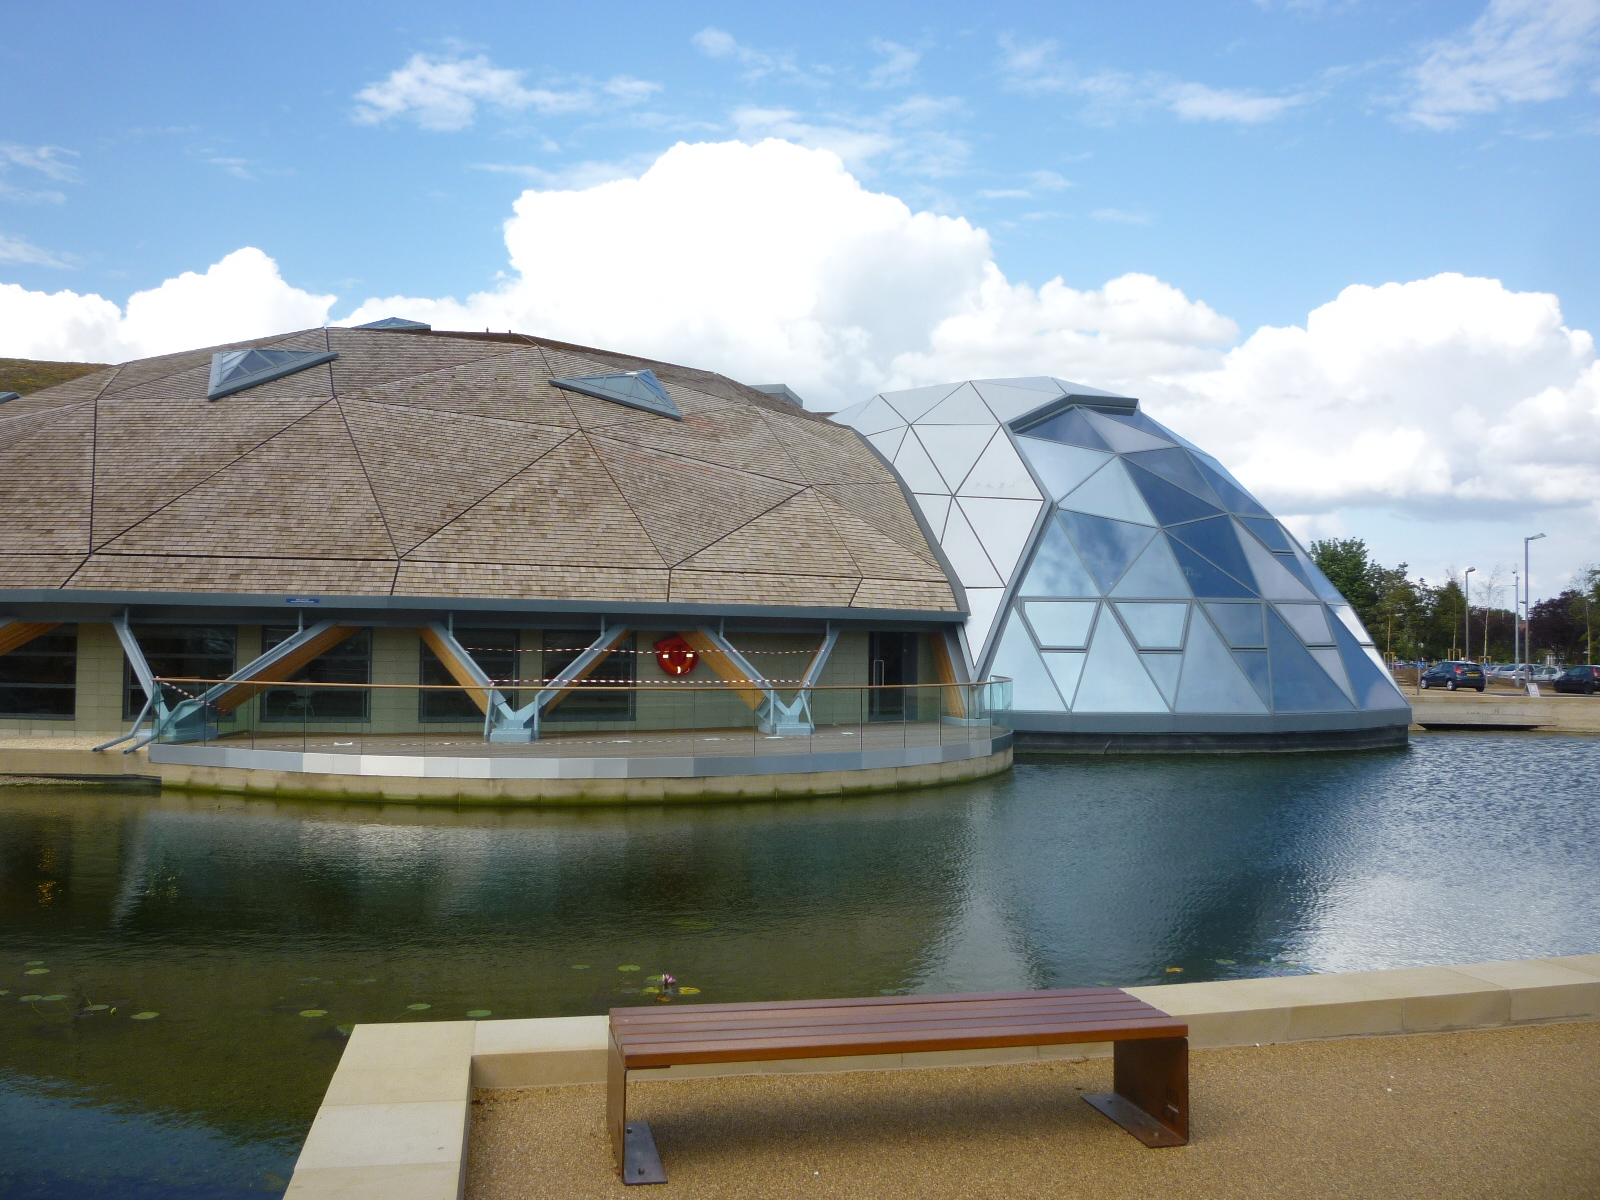 Scunthorpe – The Pods Leisure Centre (2011)